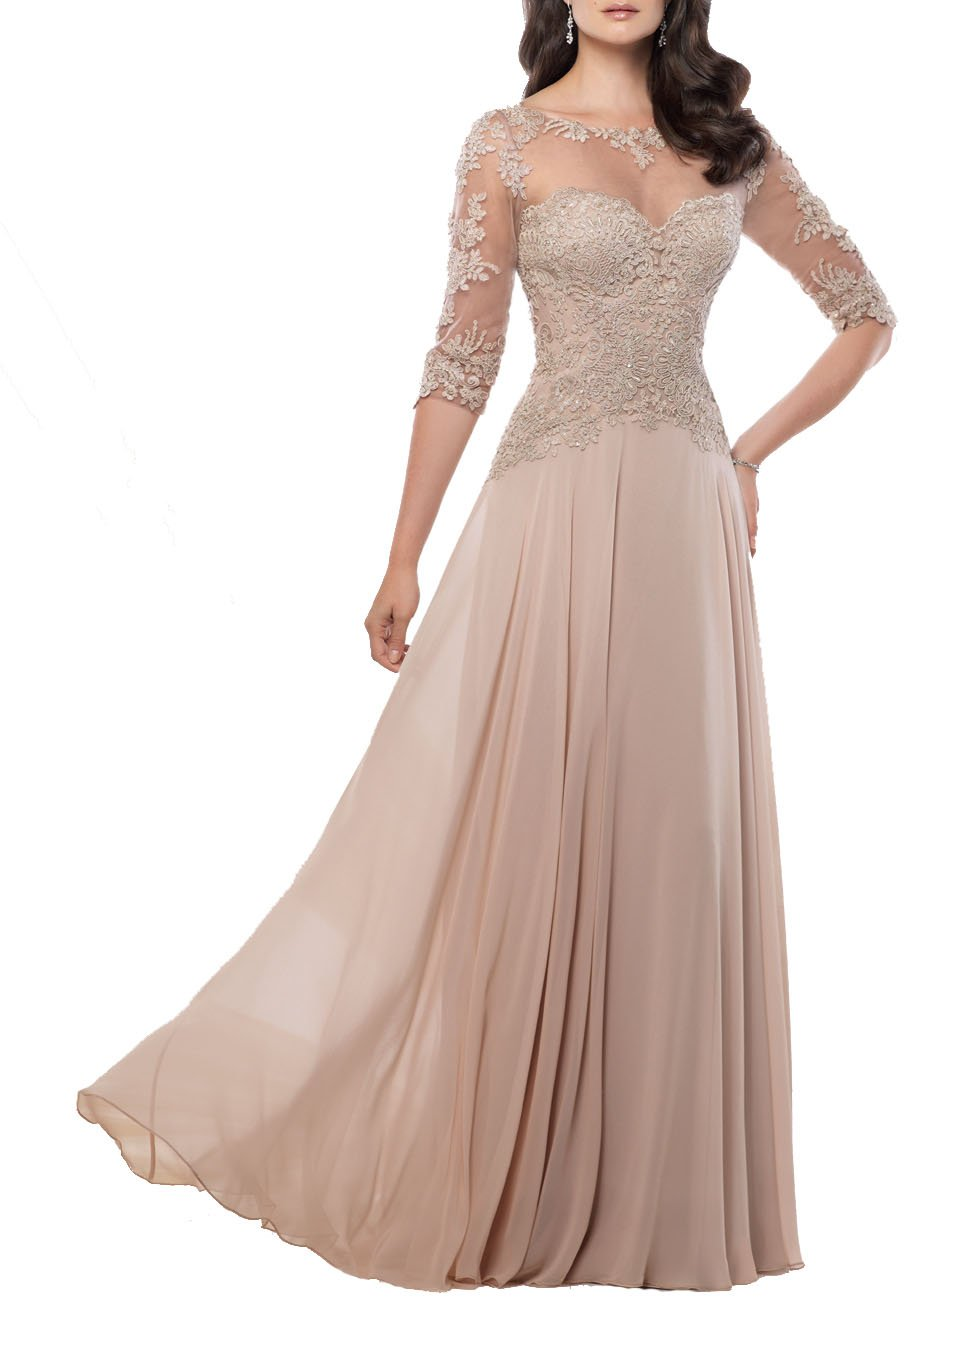 Sexy Women Long Evening Prom Dress Beige Plus Size 18 by Butterfly Paradise Dress